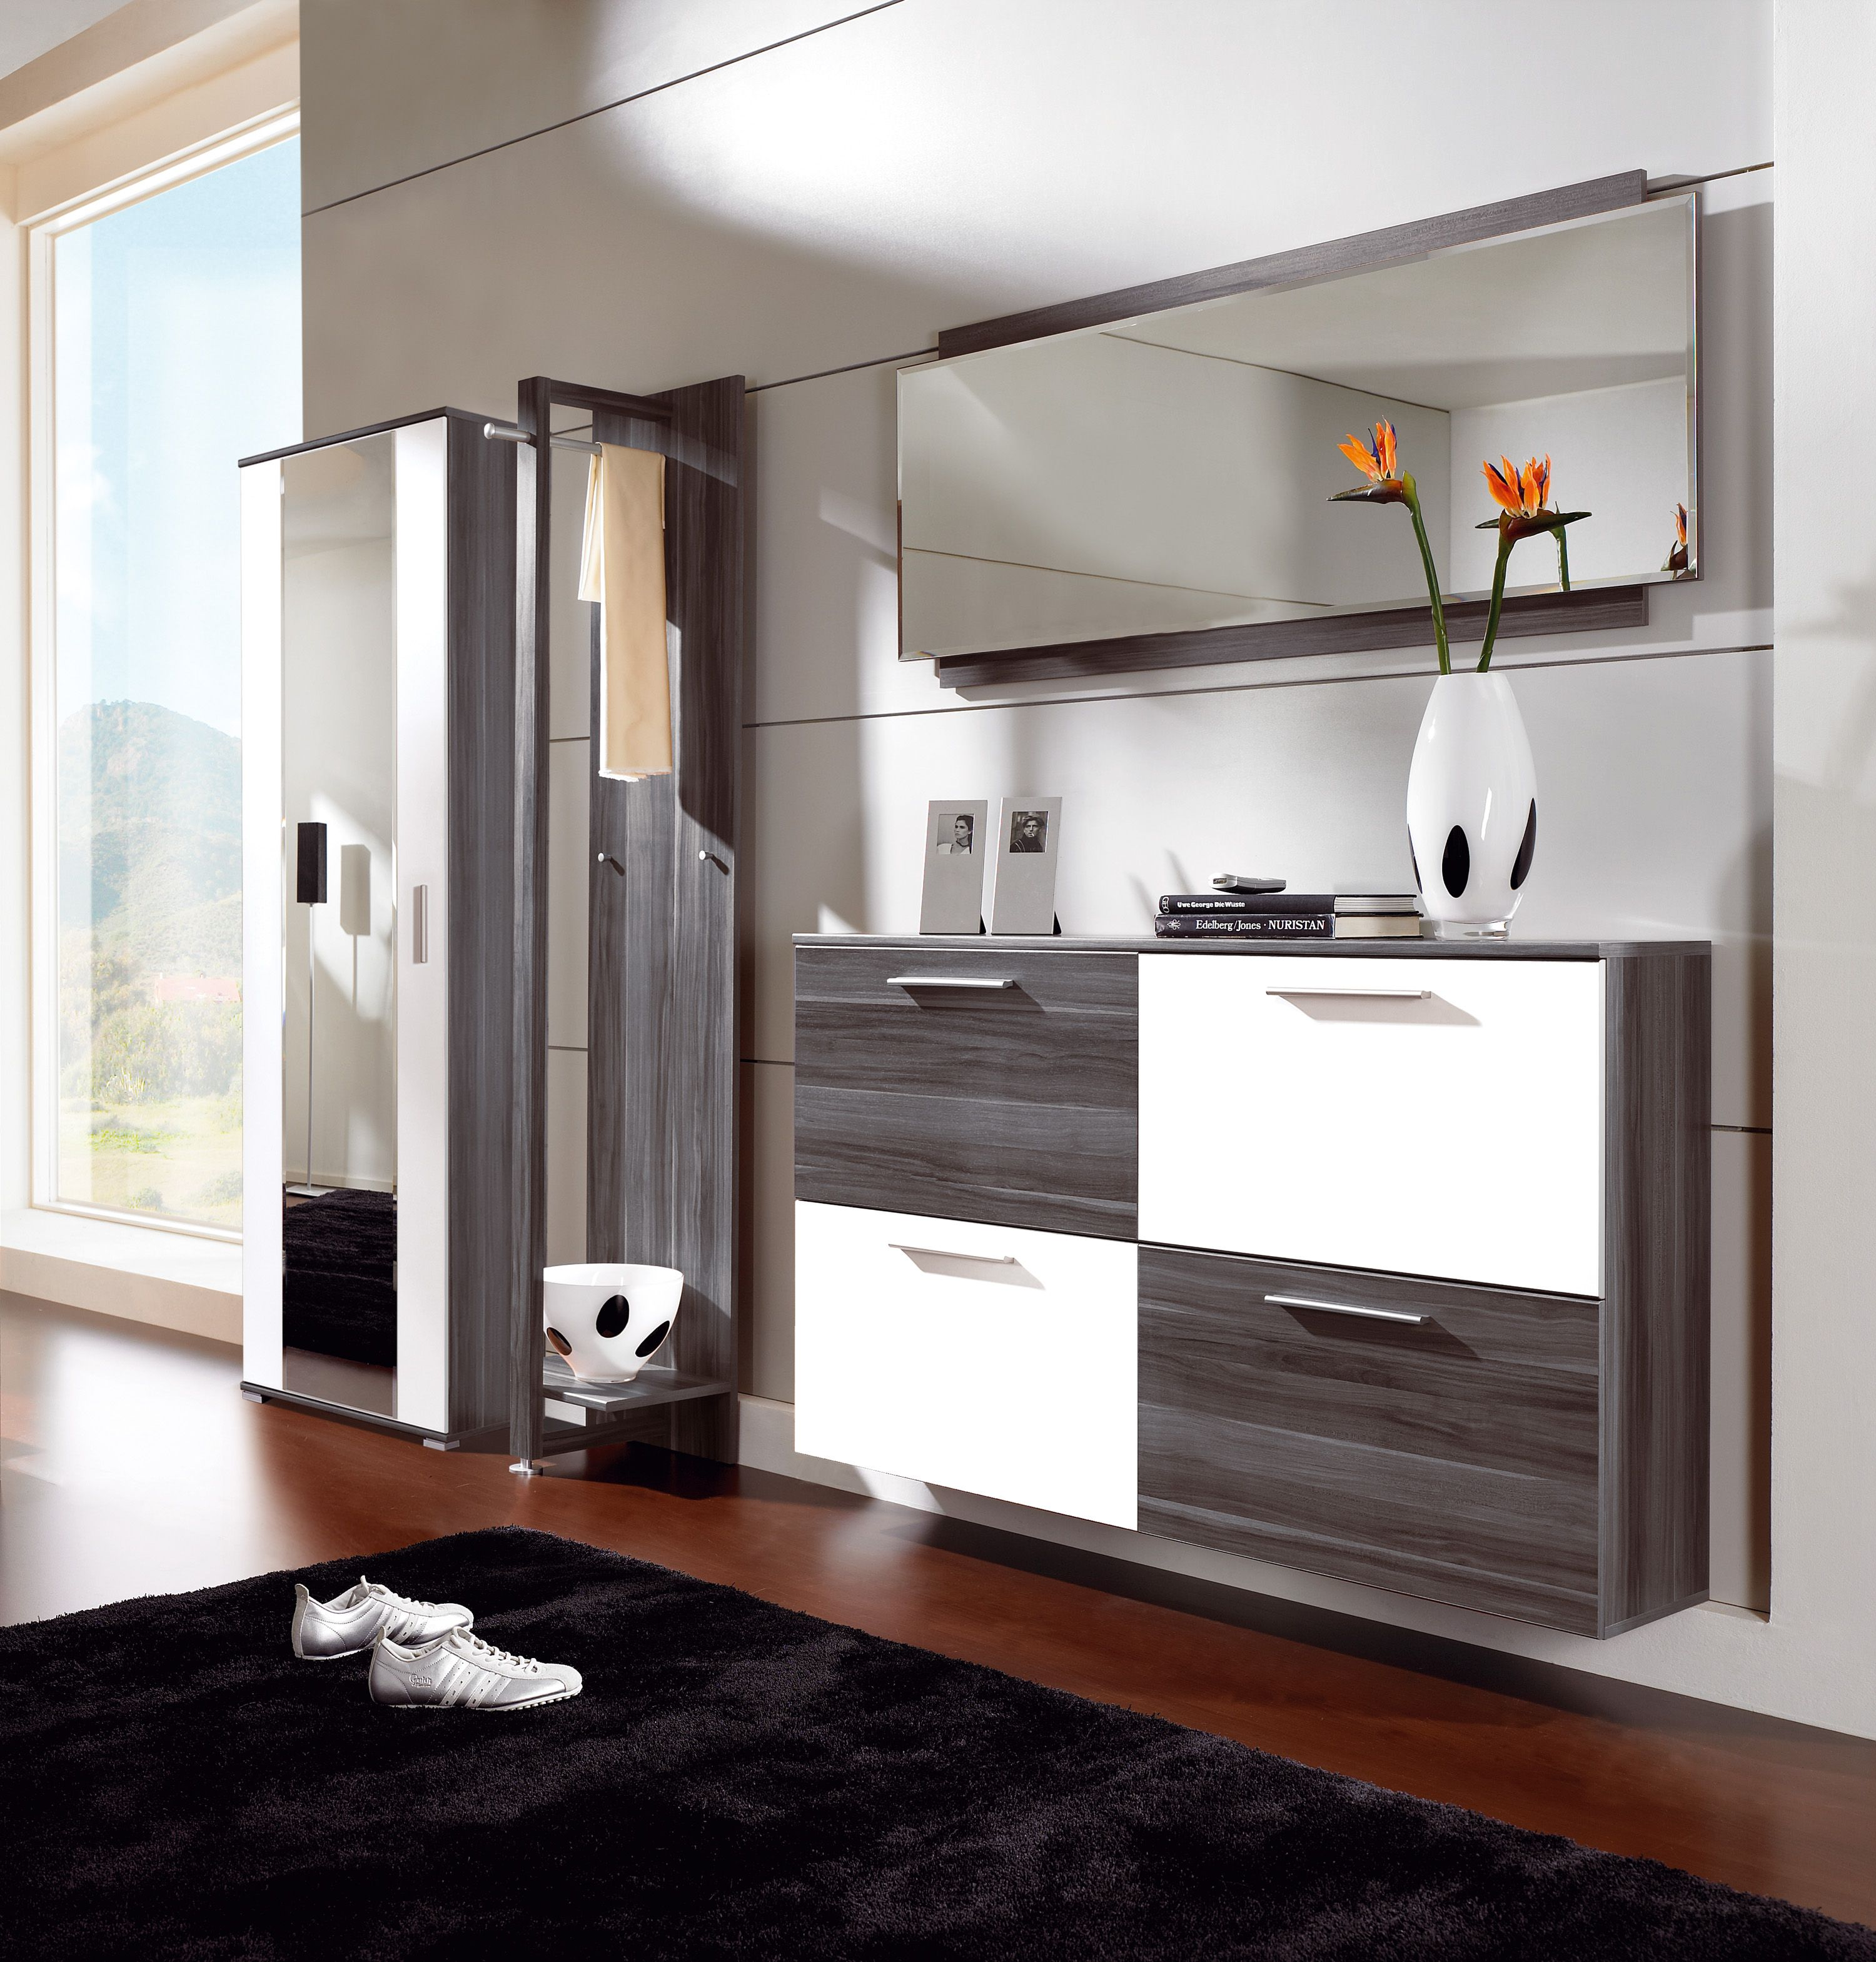 Living Room Storage Systems: Living-room : Guidelines On Useful Shoe Cabinets For The